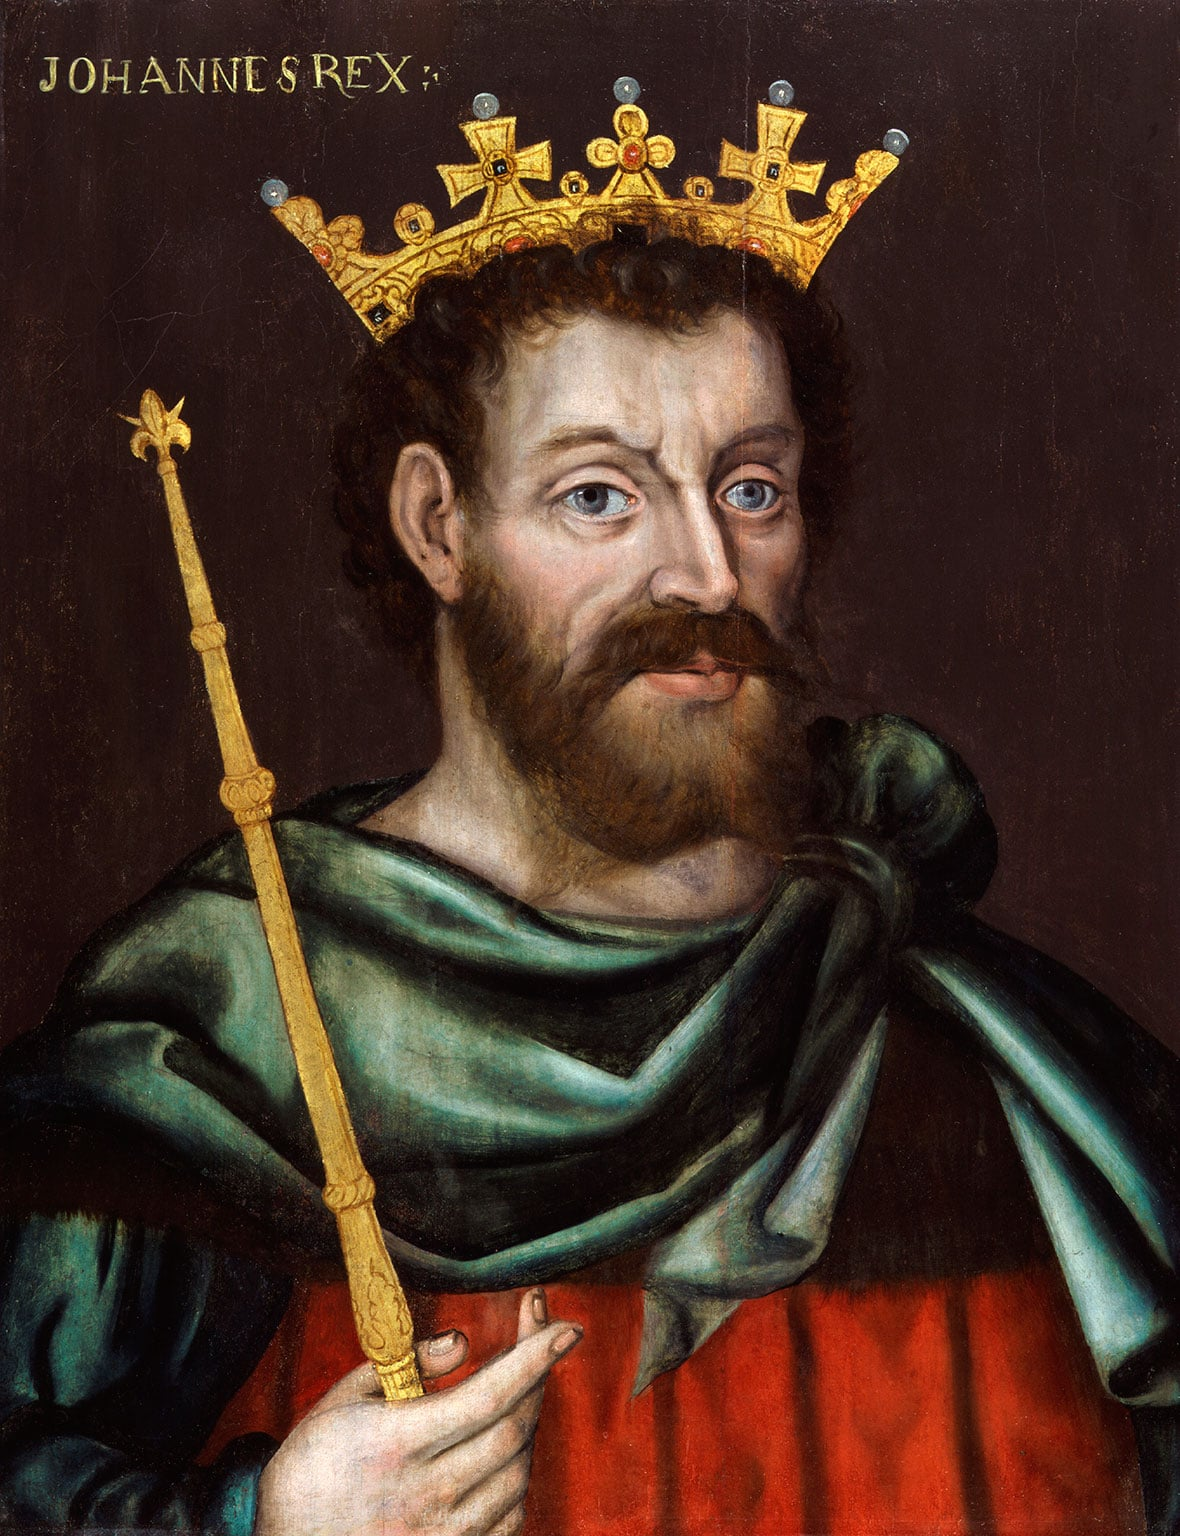 First known portrait of King John by an unknown artist, 1620